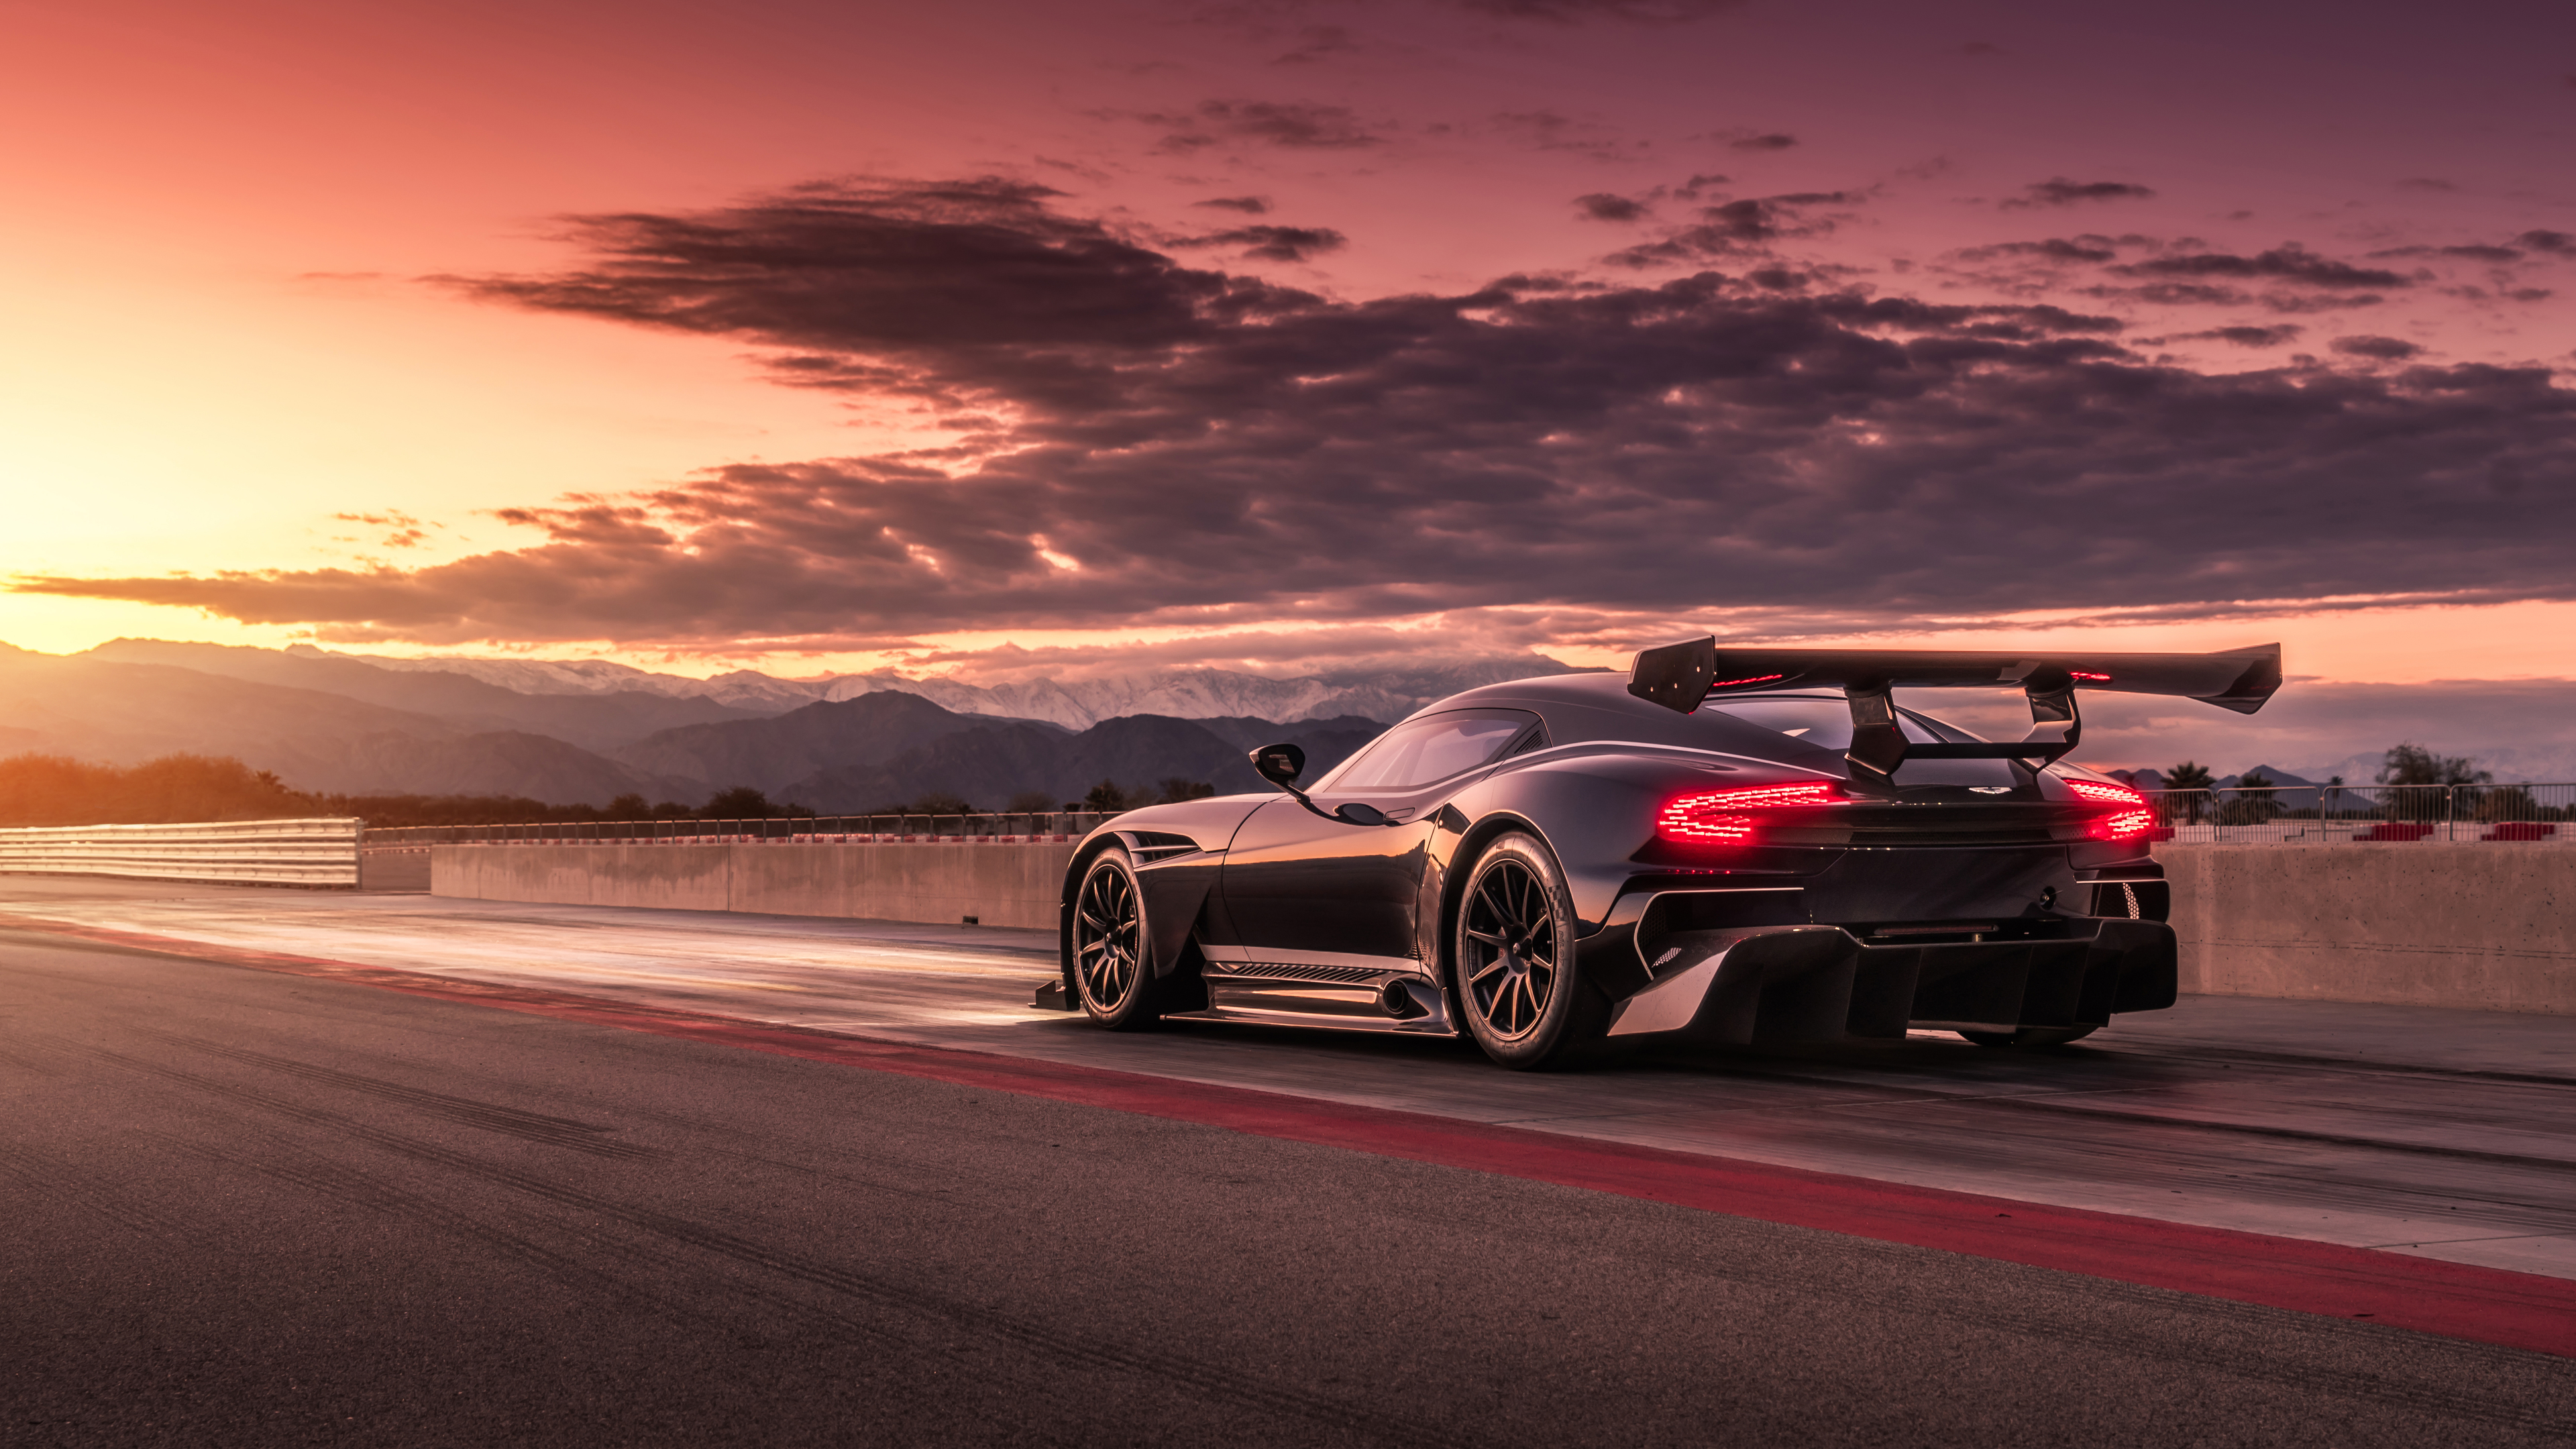 Aston Martin Vulcan 8k Hd-wallpapers, Cars Wallpapers